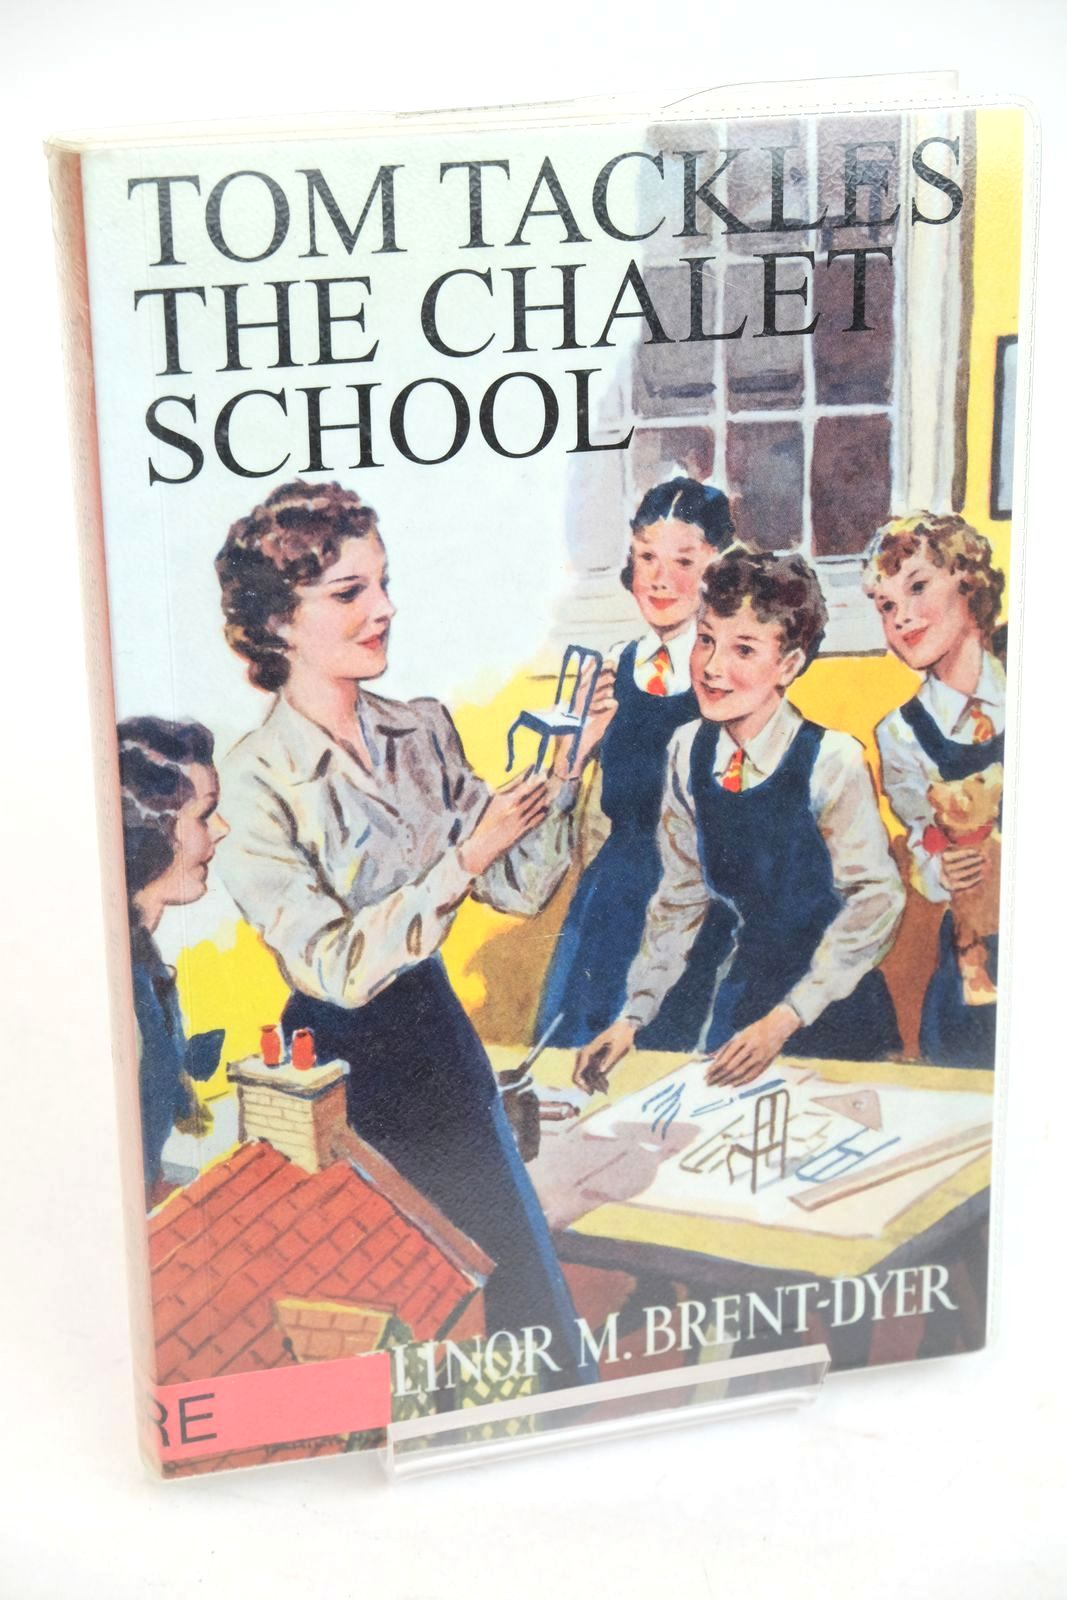 Photo of TOM TACKLES THE CHALET SCHOOL written by Brent-Dyer, Elinor M. illustrated by Hamilton, W. Bryce published by Girls Gone By (STOCK CODE: 1320829)  for sale by Stella & Rose's Books